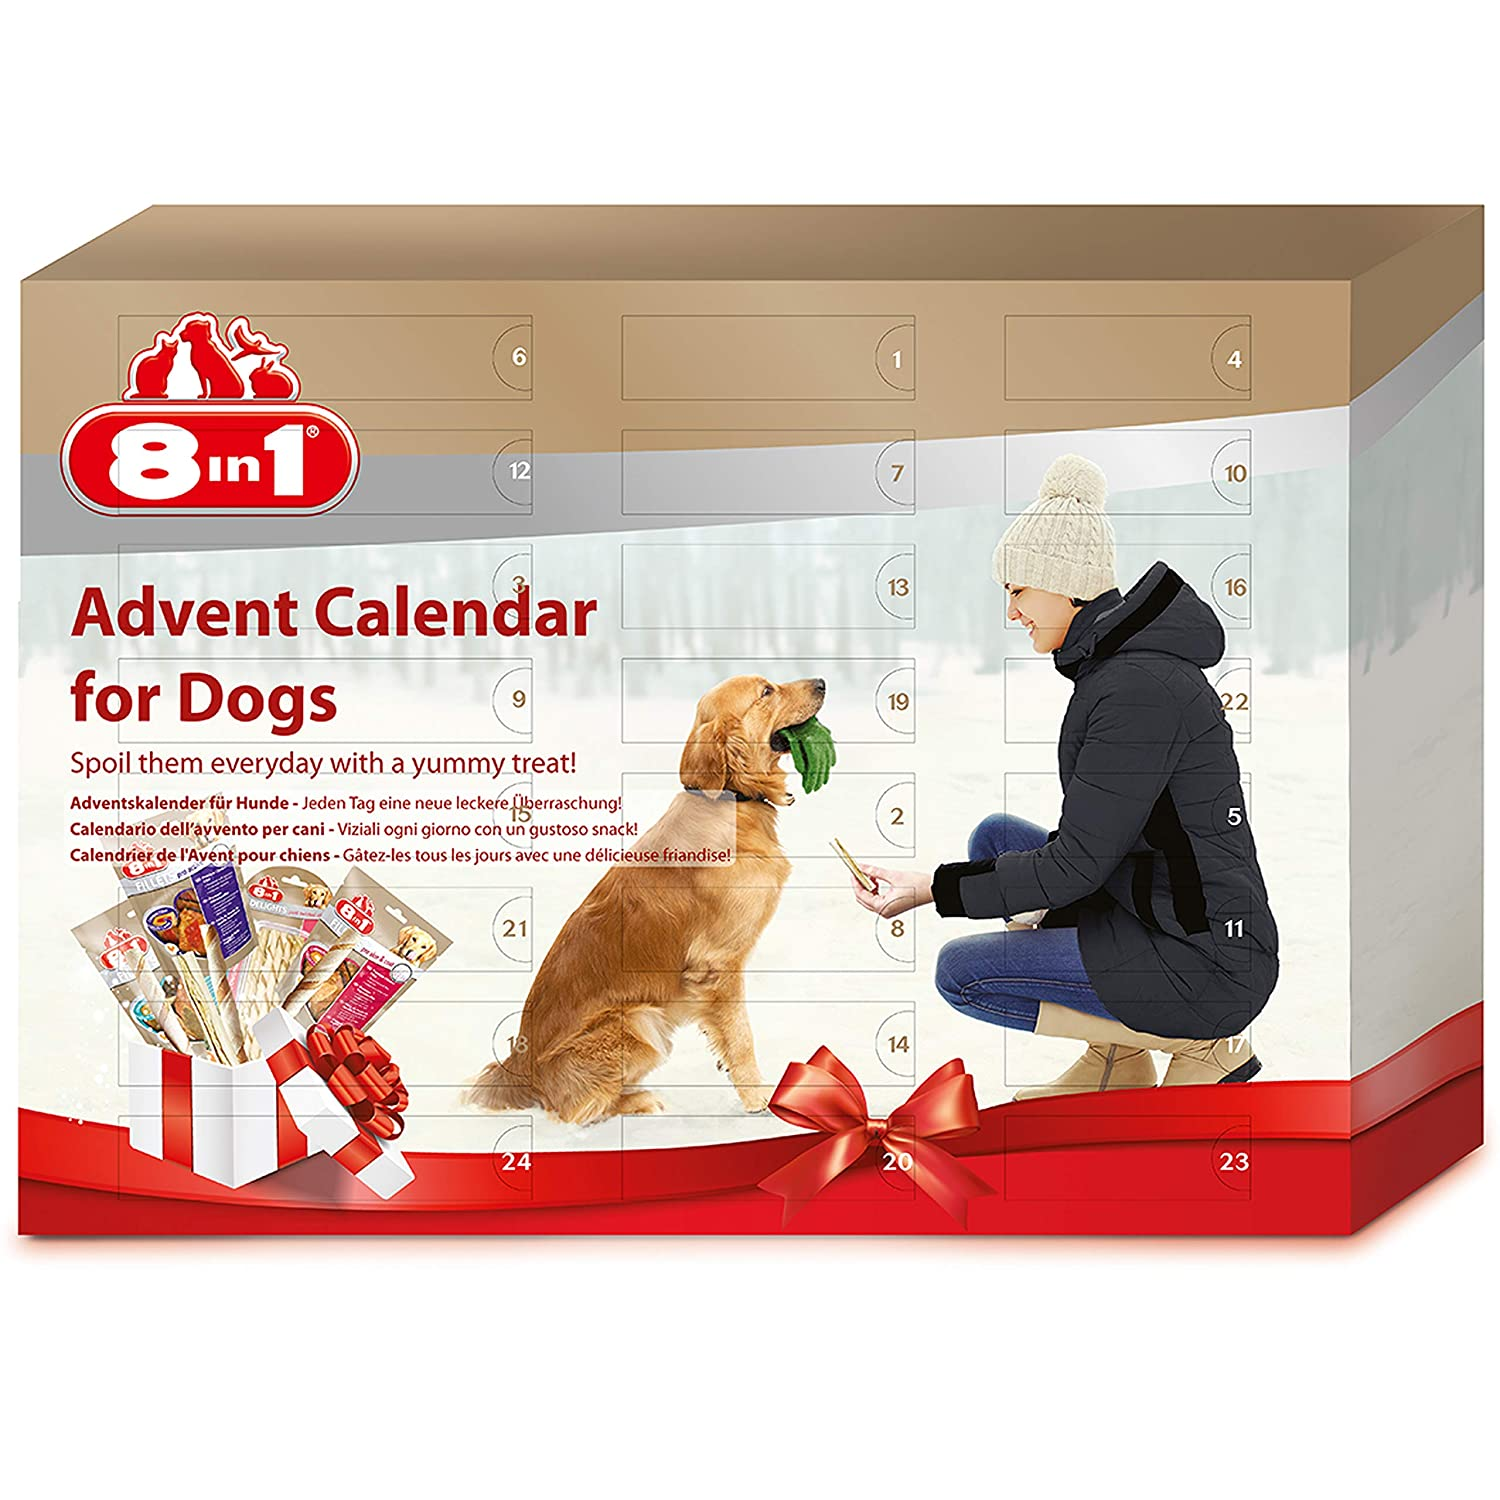 8 in 1 Advent Calendar with Yummy Treats for your Dog Spectrum Brands T661455